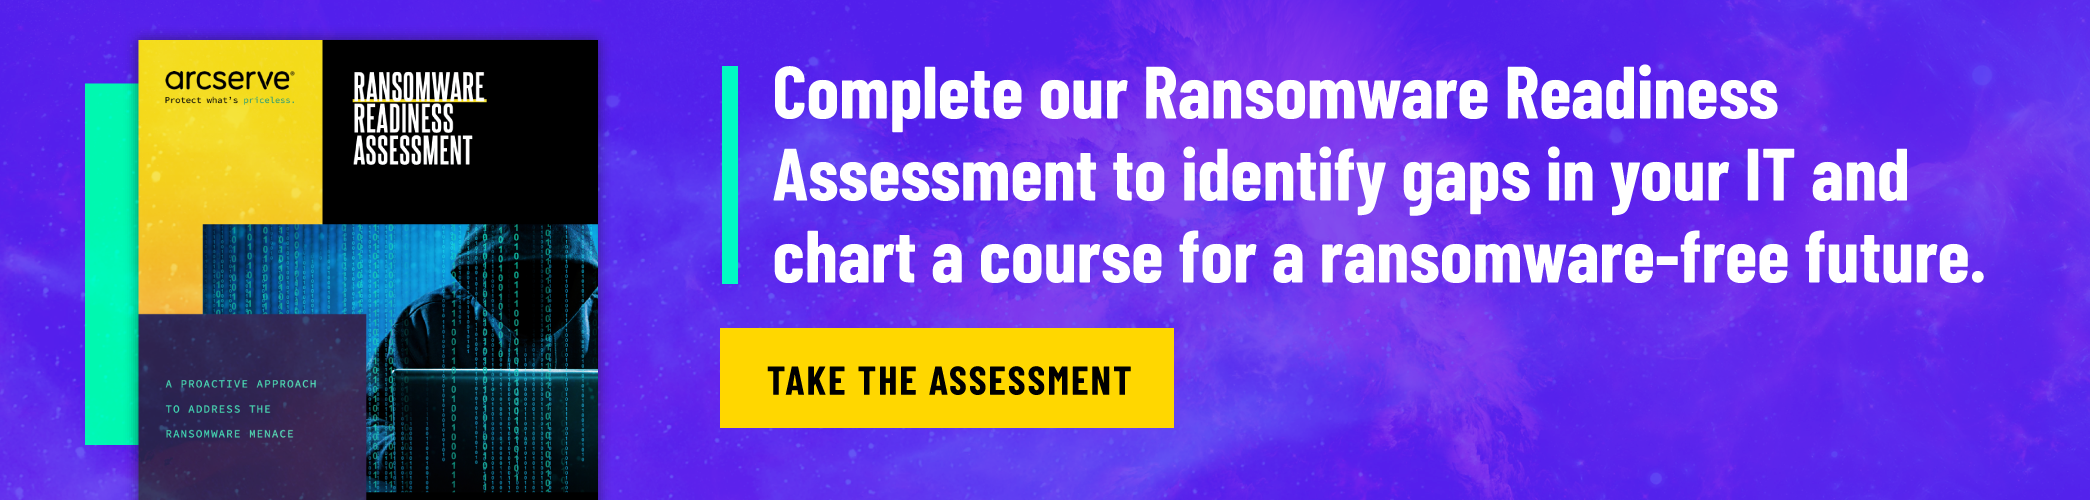 See how your ransomware protection capabilities measure up with our free Ransomware Readiness Assessment. >>